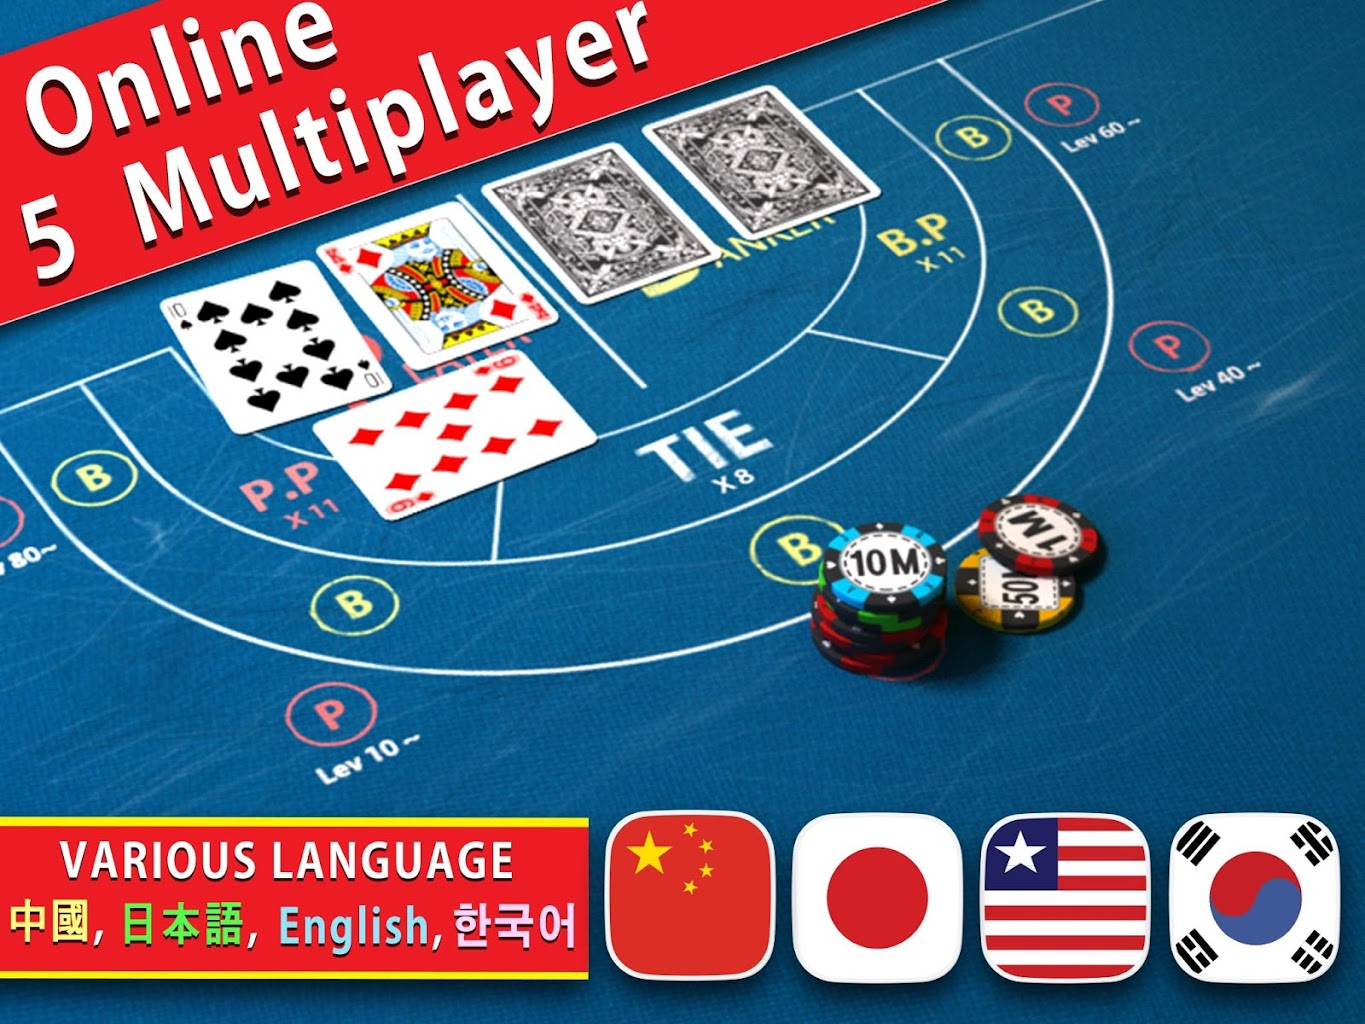 Online gambling revenue by country, Casino slot machines